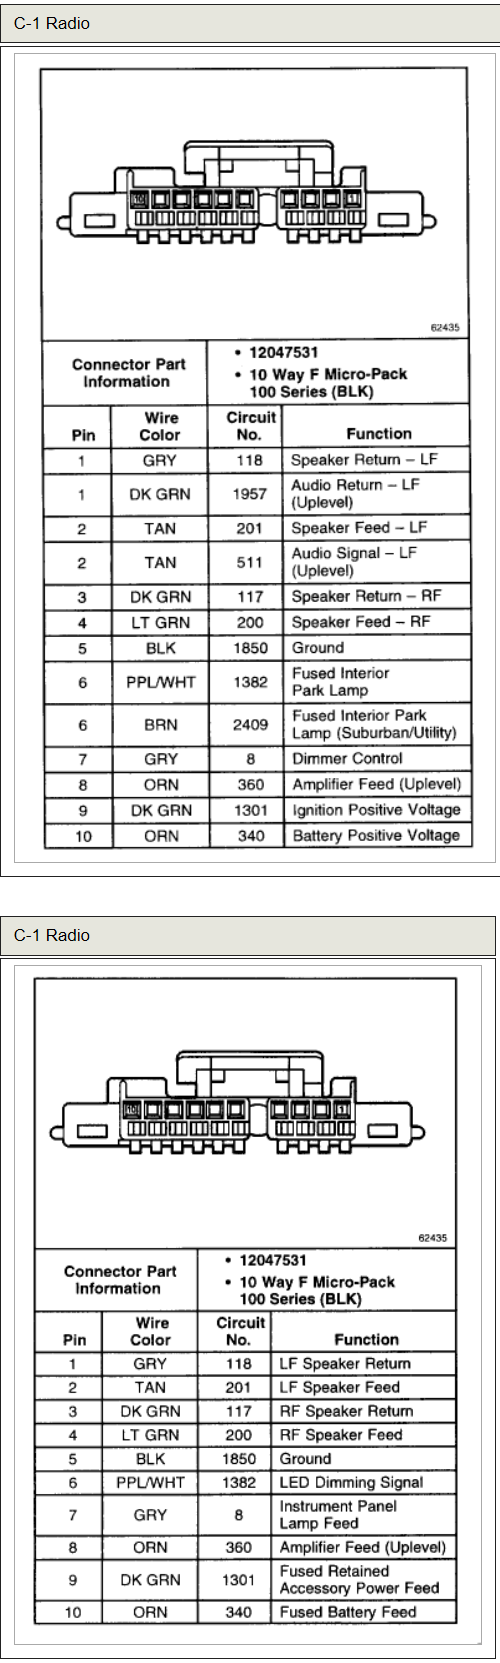 Chevrolet Tahoe LS 2000 stereo wiring connector 2 chevrolet car radio stereo audio wiring diagram autoradio 2002 chevy tracker wiring diagram at bayanpartner.co